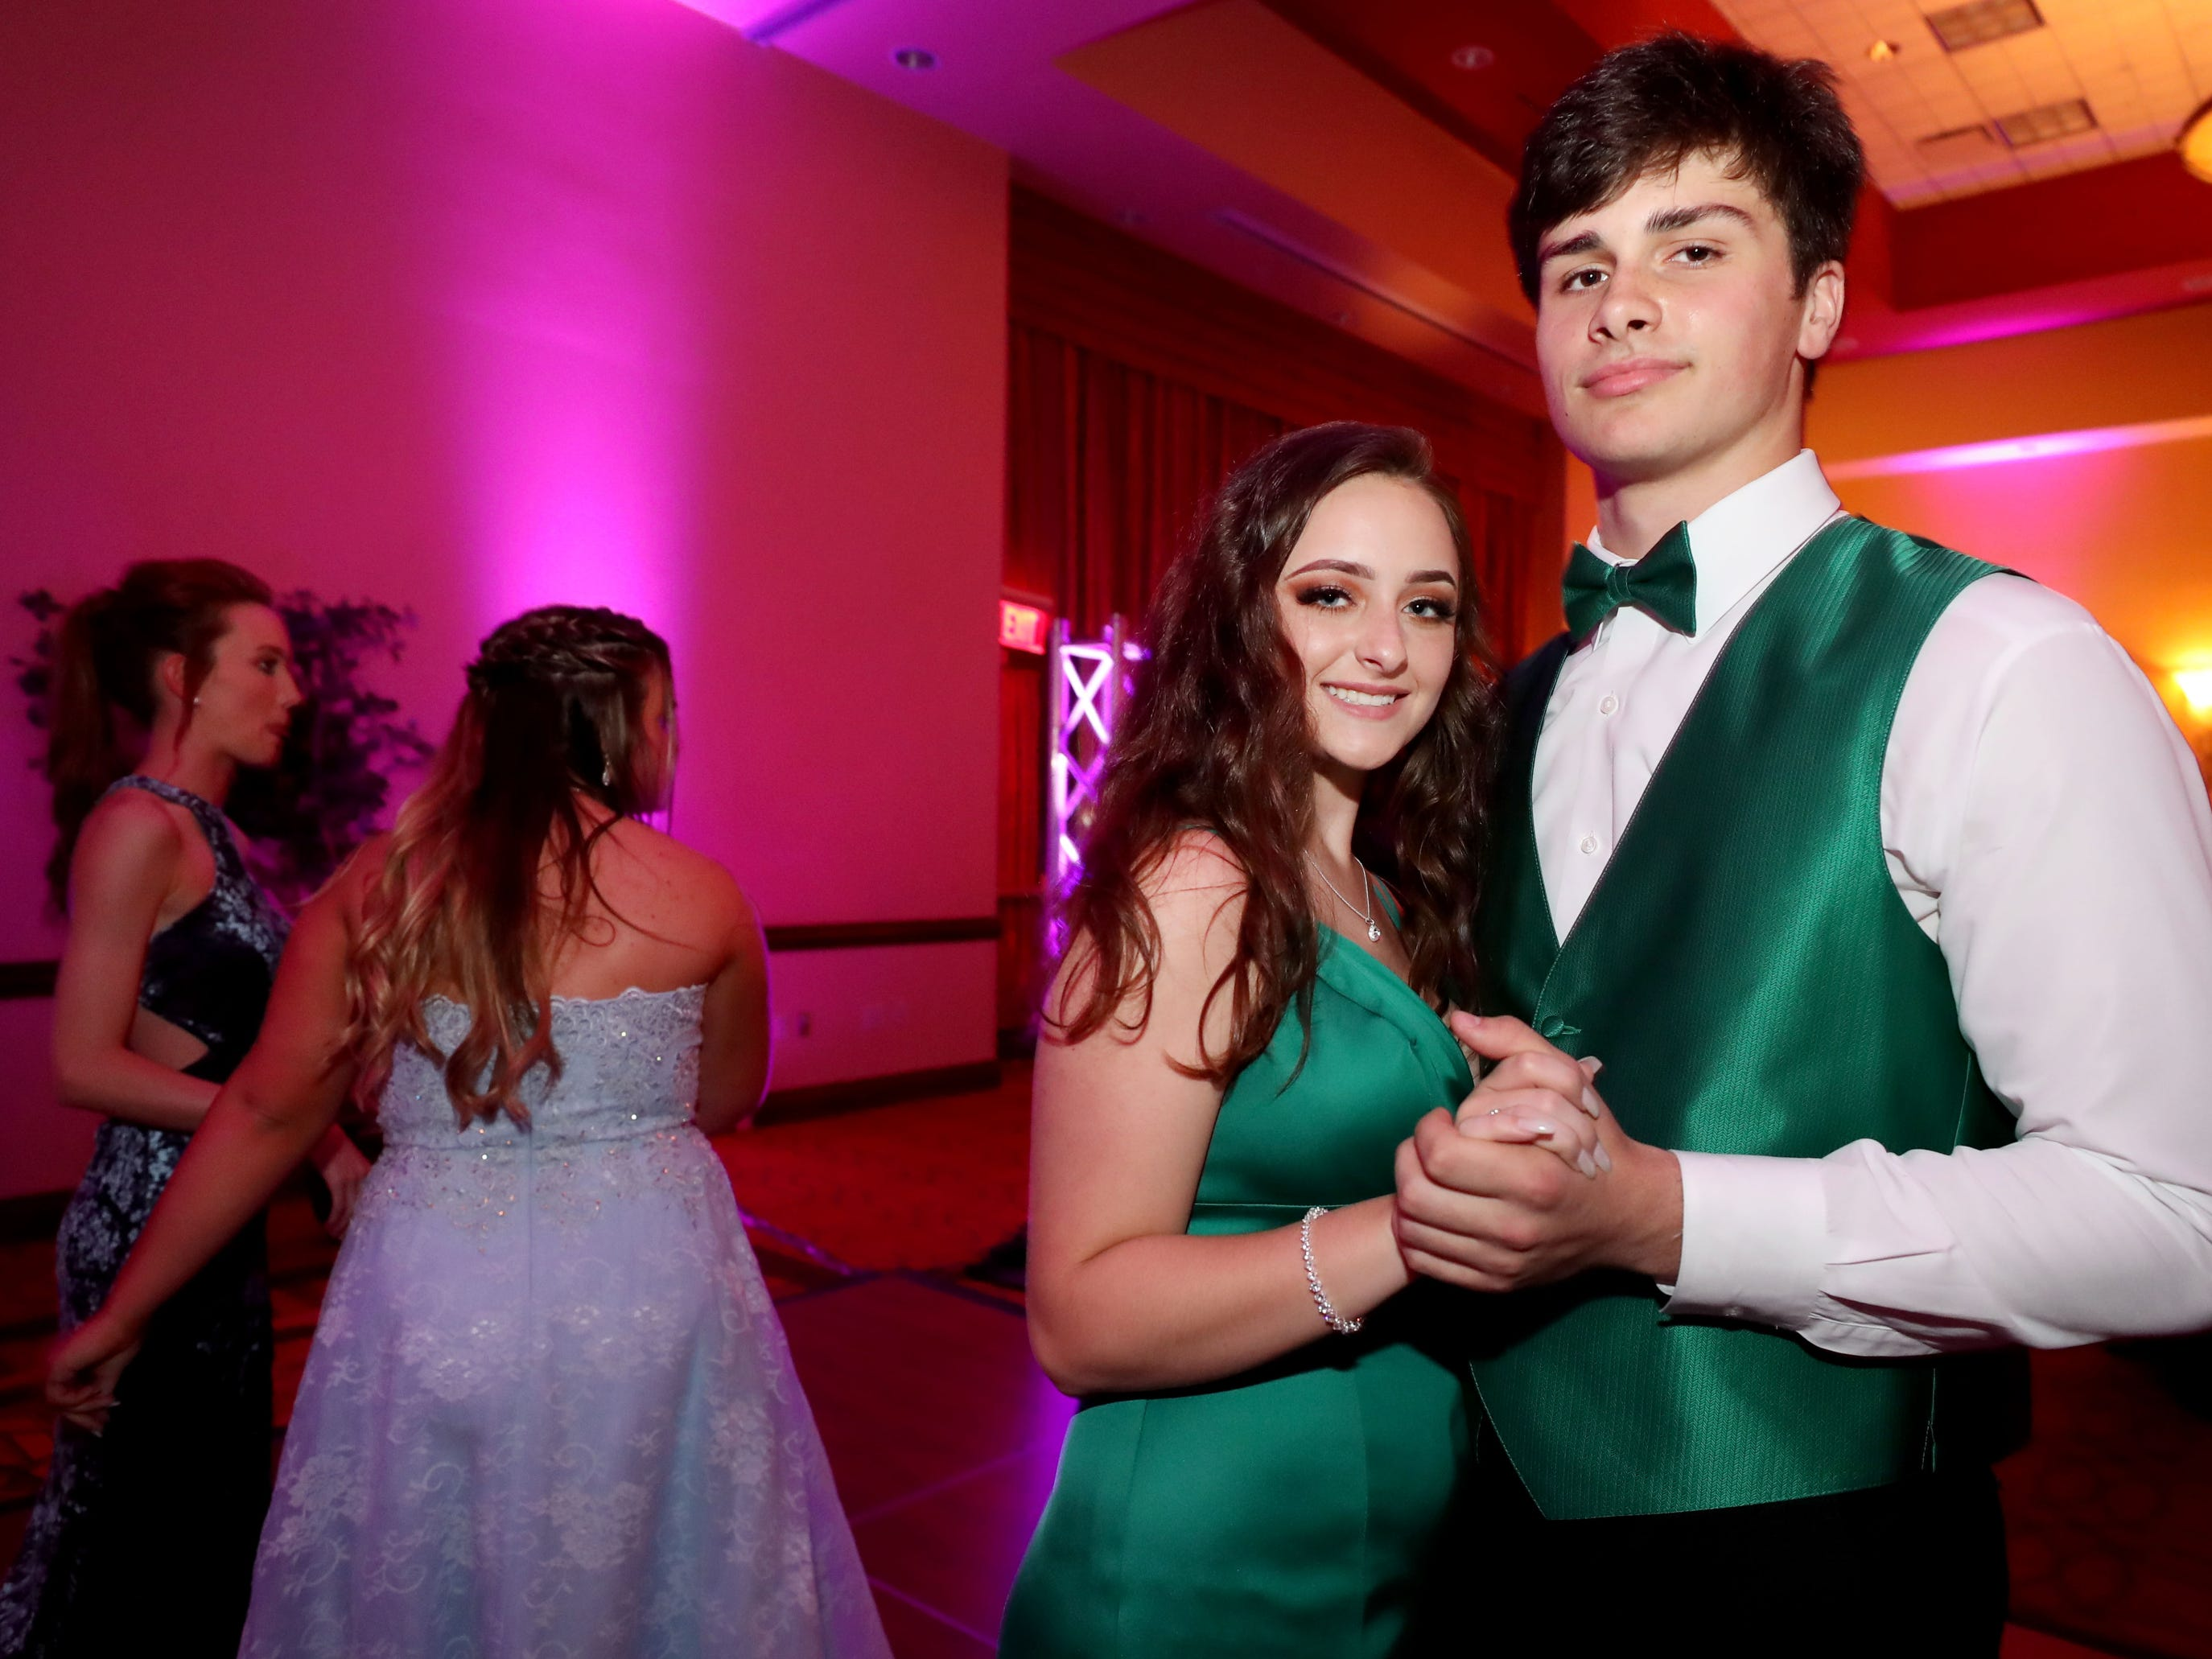 """Haylee Amerman, left and Joey Johnson, right  dance to """"At Last"""" at Eagleville's Prom held at Embassy Suites, in Murfreesboro on Thursday April 5, 2019."""